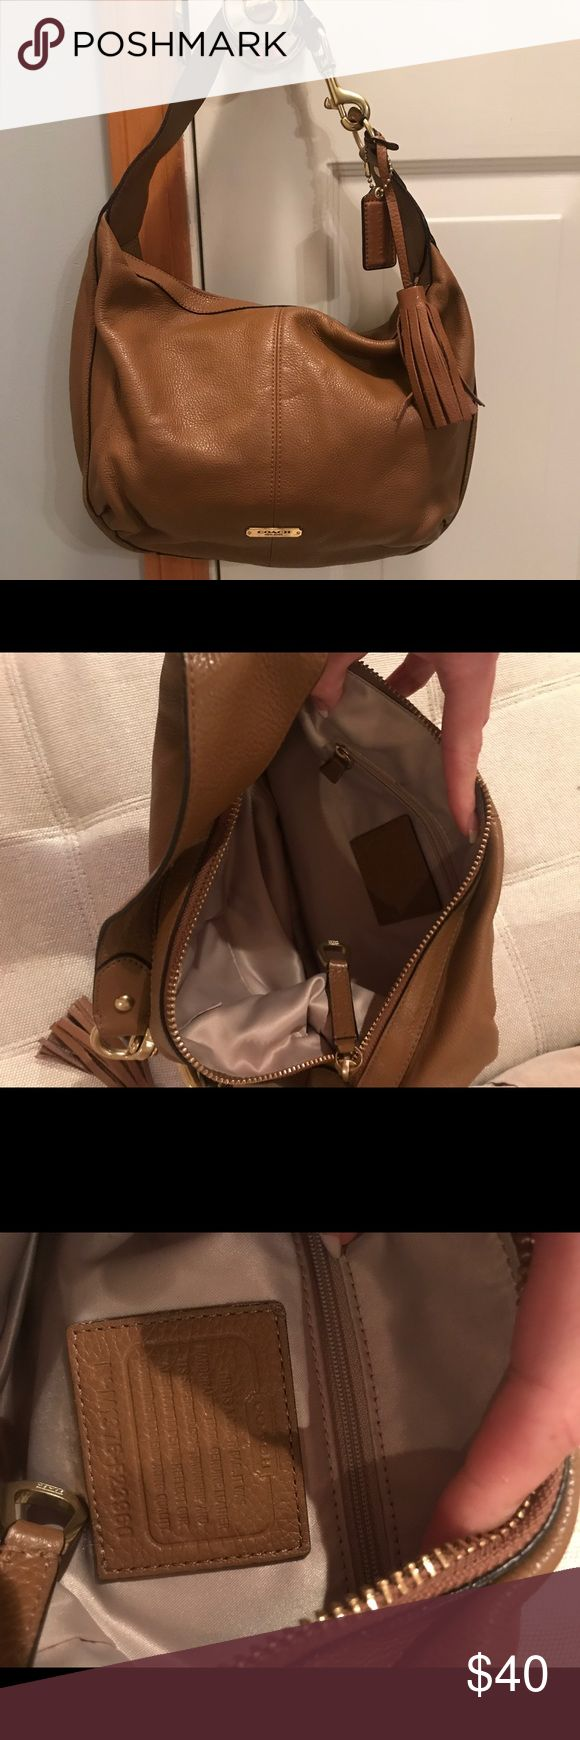 Cognac Leather Coach Satchel Cognac Leather Coach purse has been used but in good contrition. Great fall bag ! Coach Bags